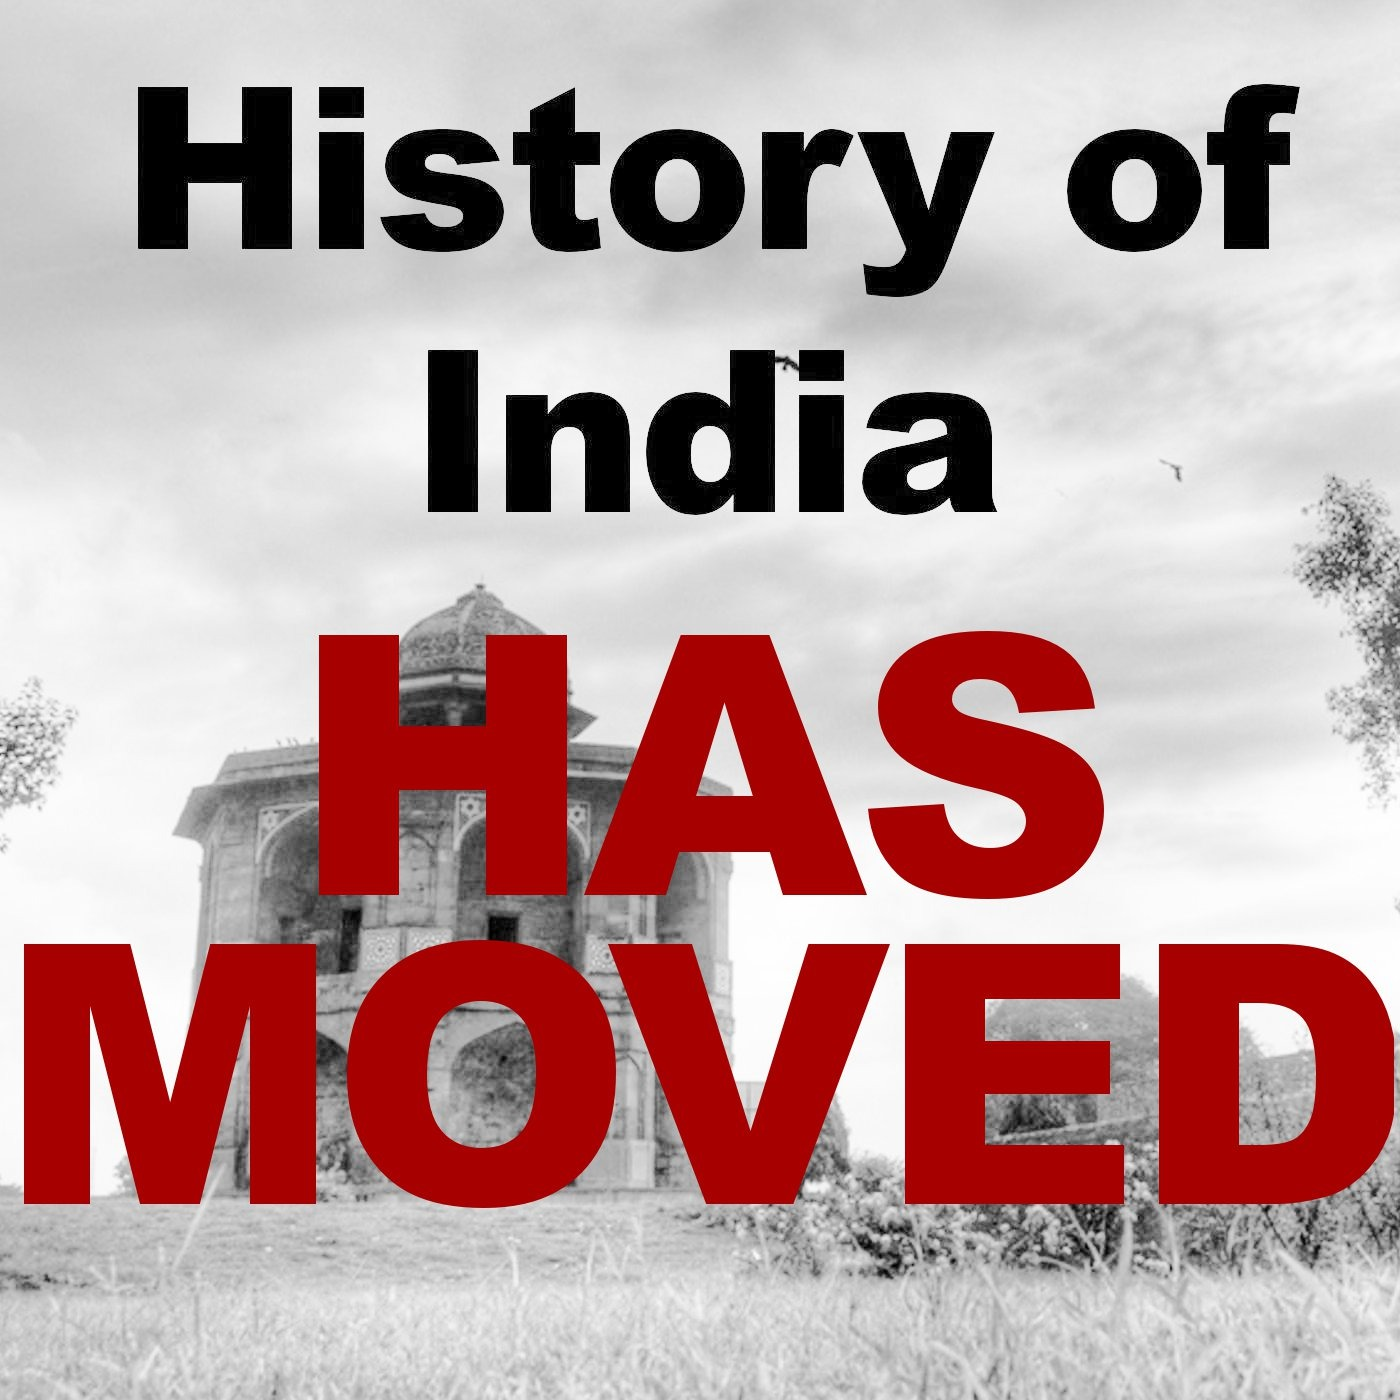 (now moved) The History of India Podcast